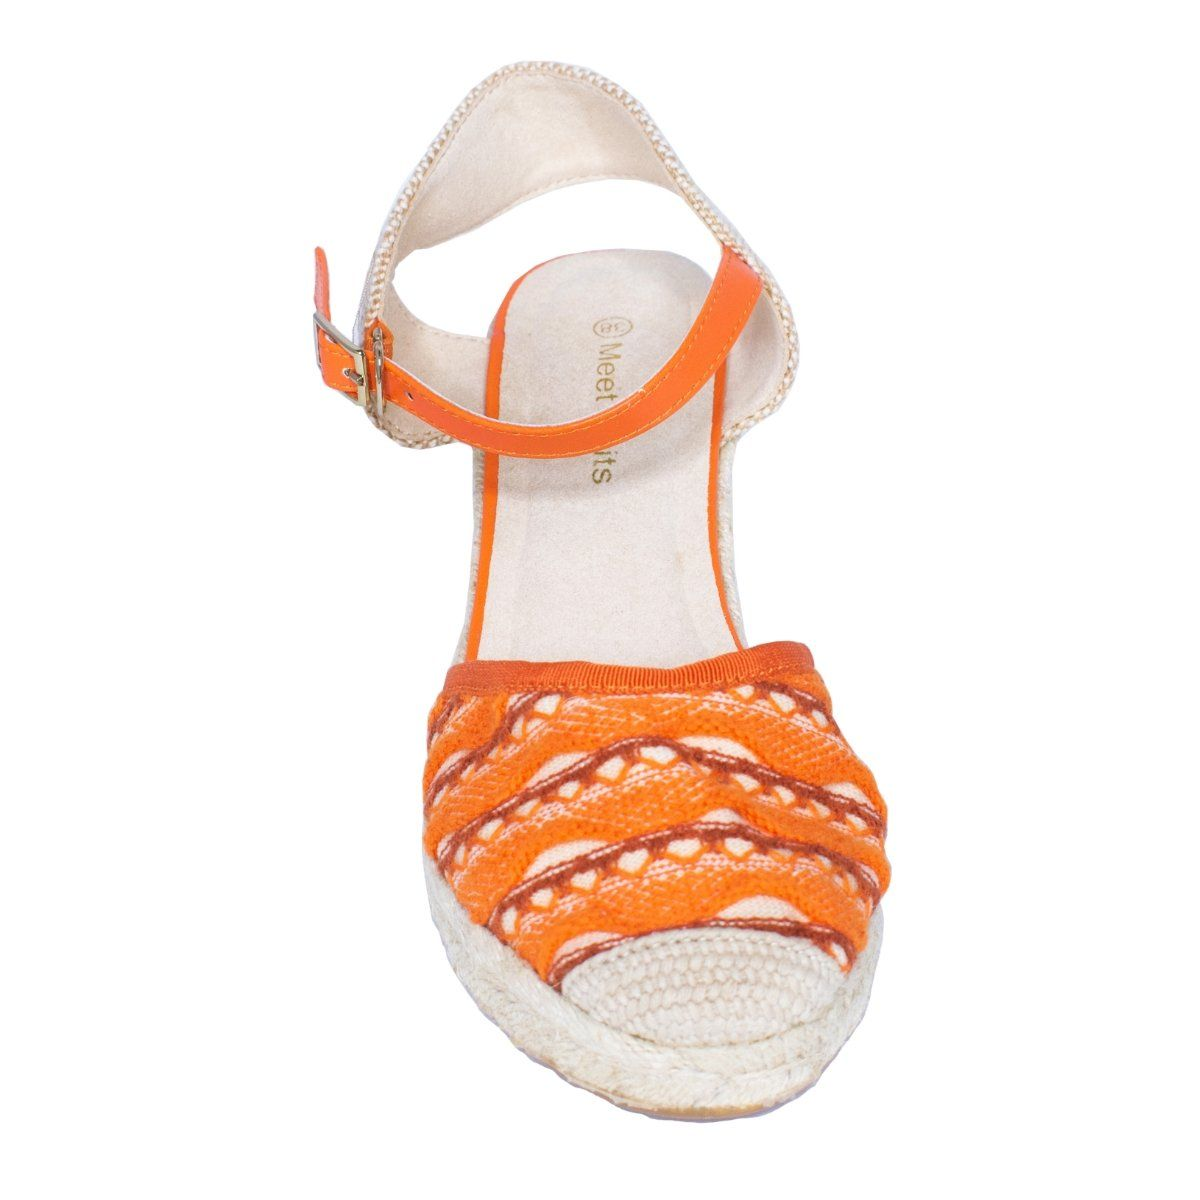 Front close view of knit wedge sandal with closed toe and orange woven pattern